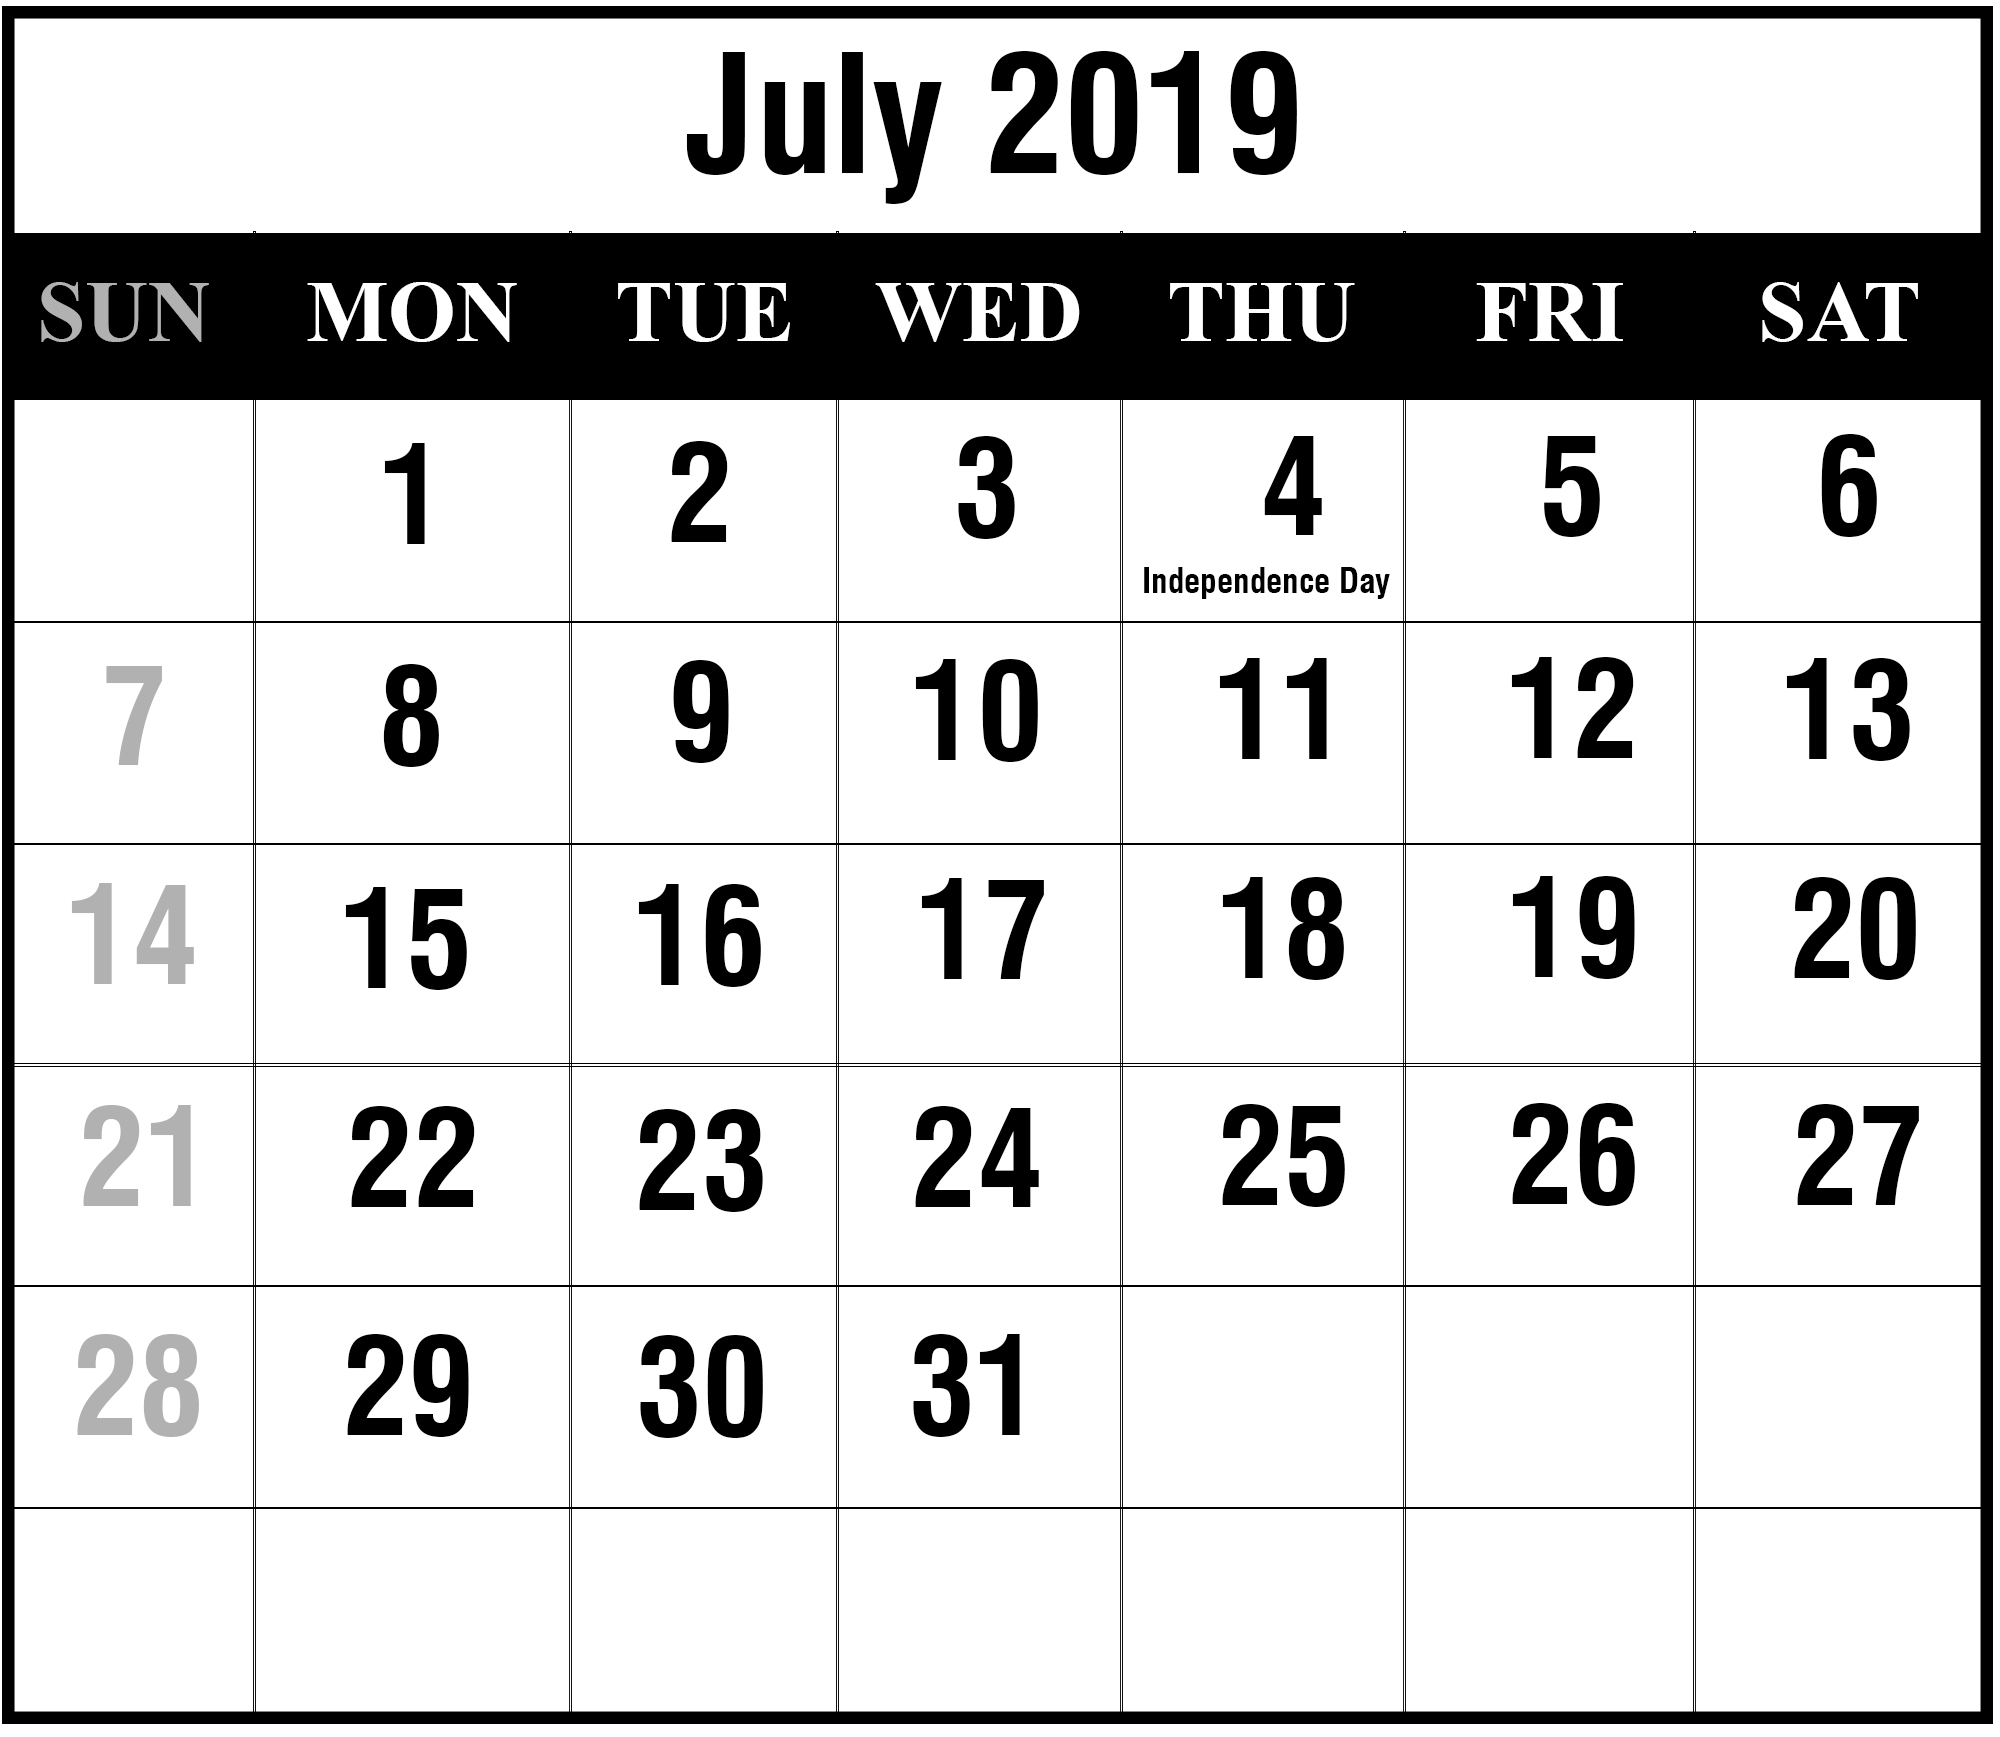 July 2019 Calendar Printable | July Blank Calendar Template July 8 2019 Calendar